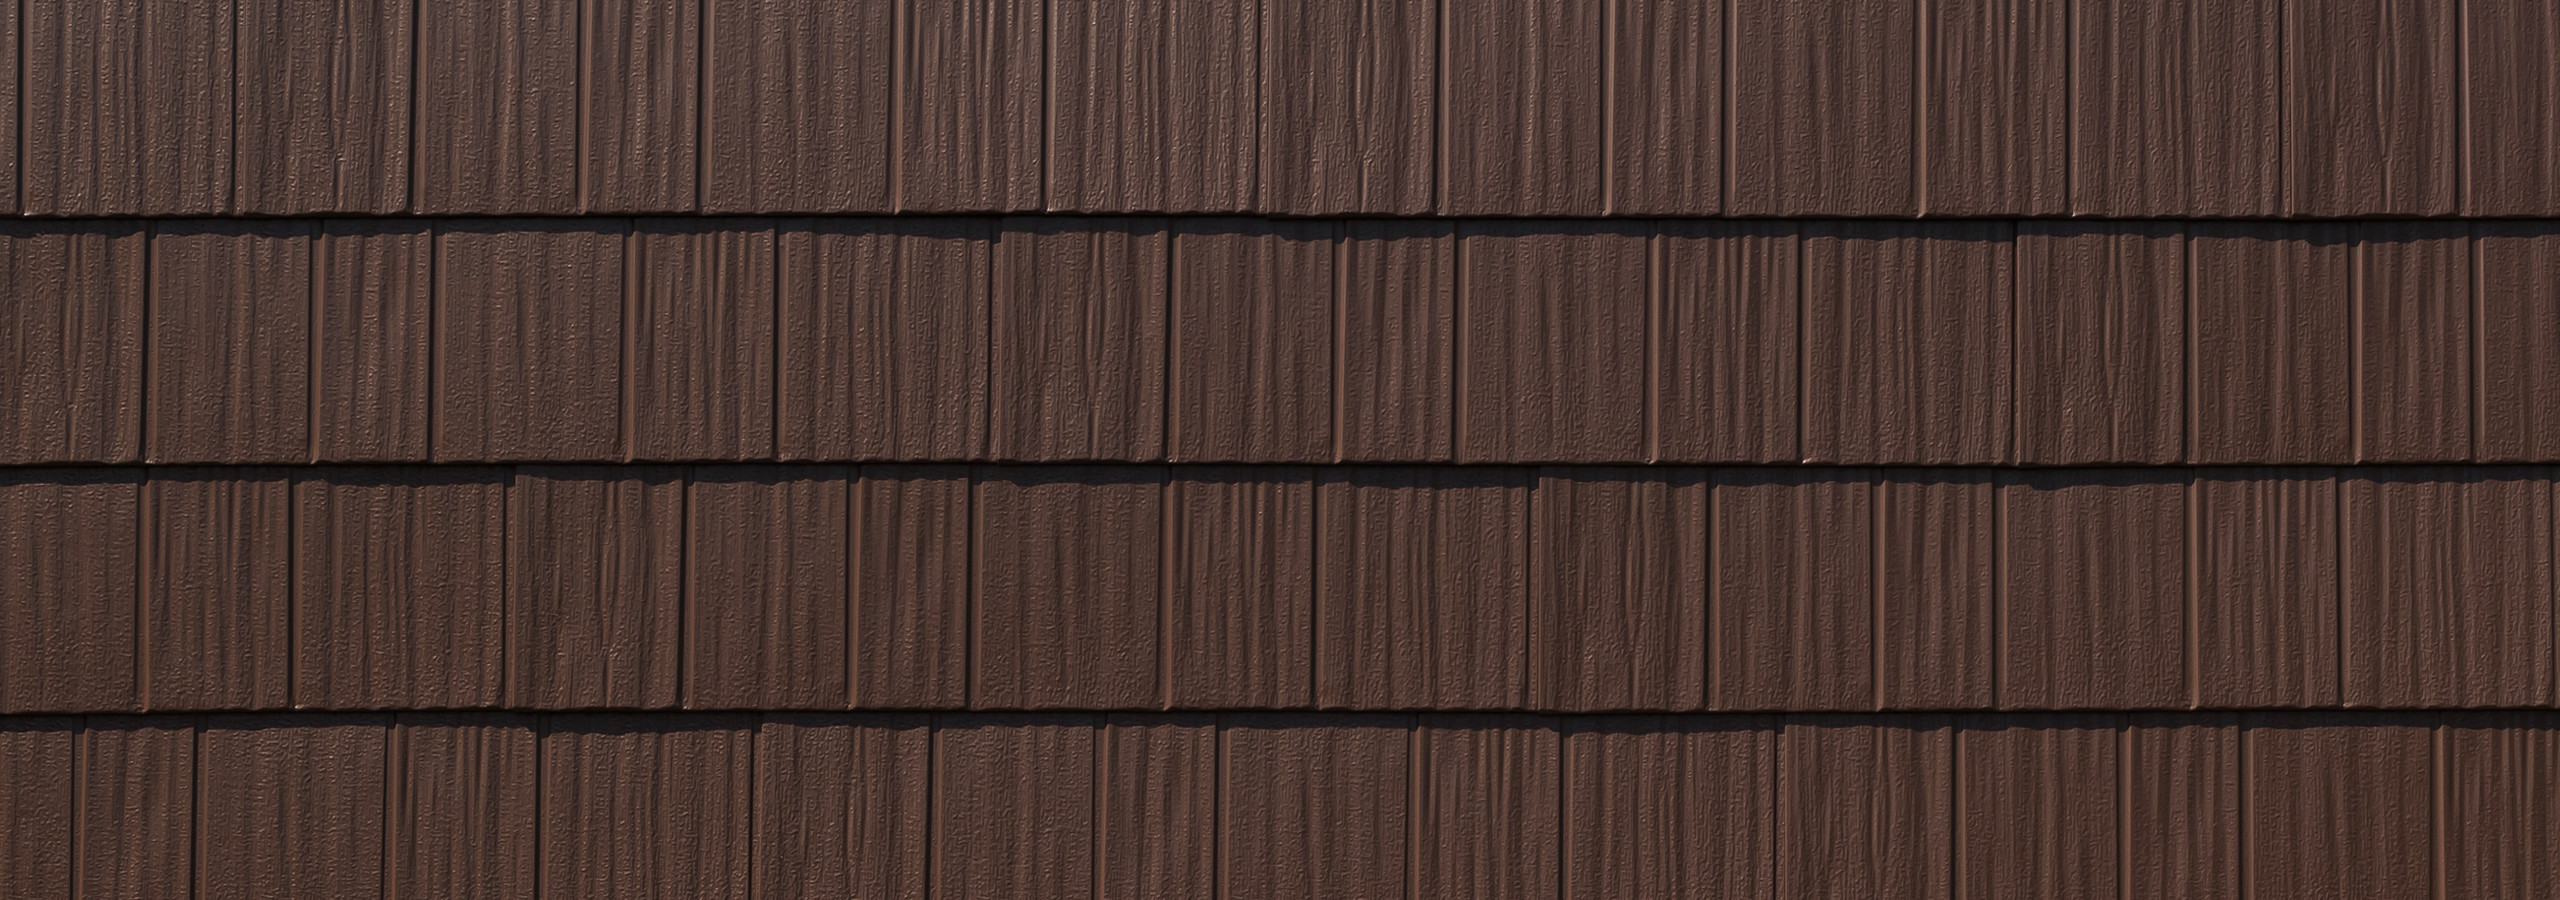 Arrowline shake charcoal gray/grey steel siding